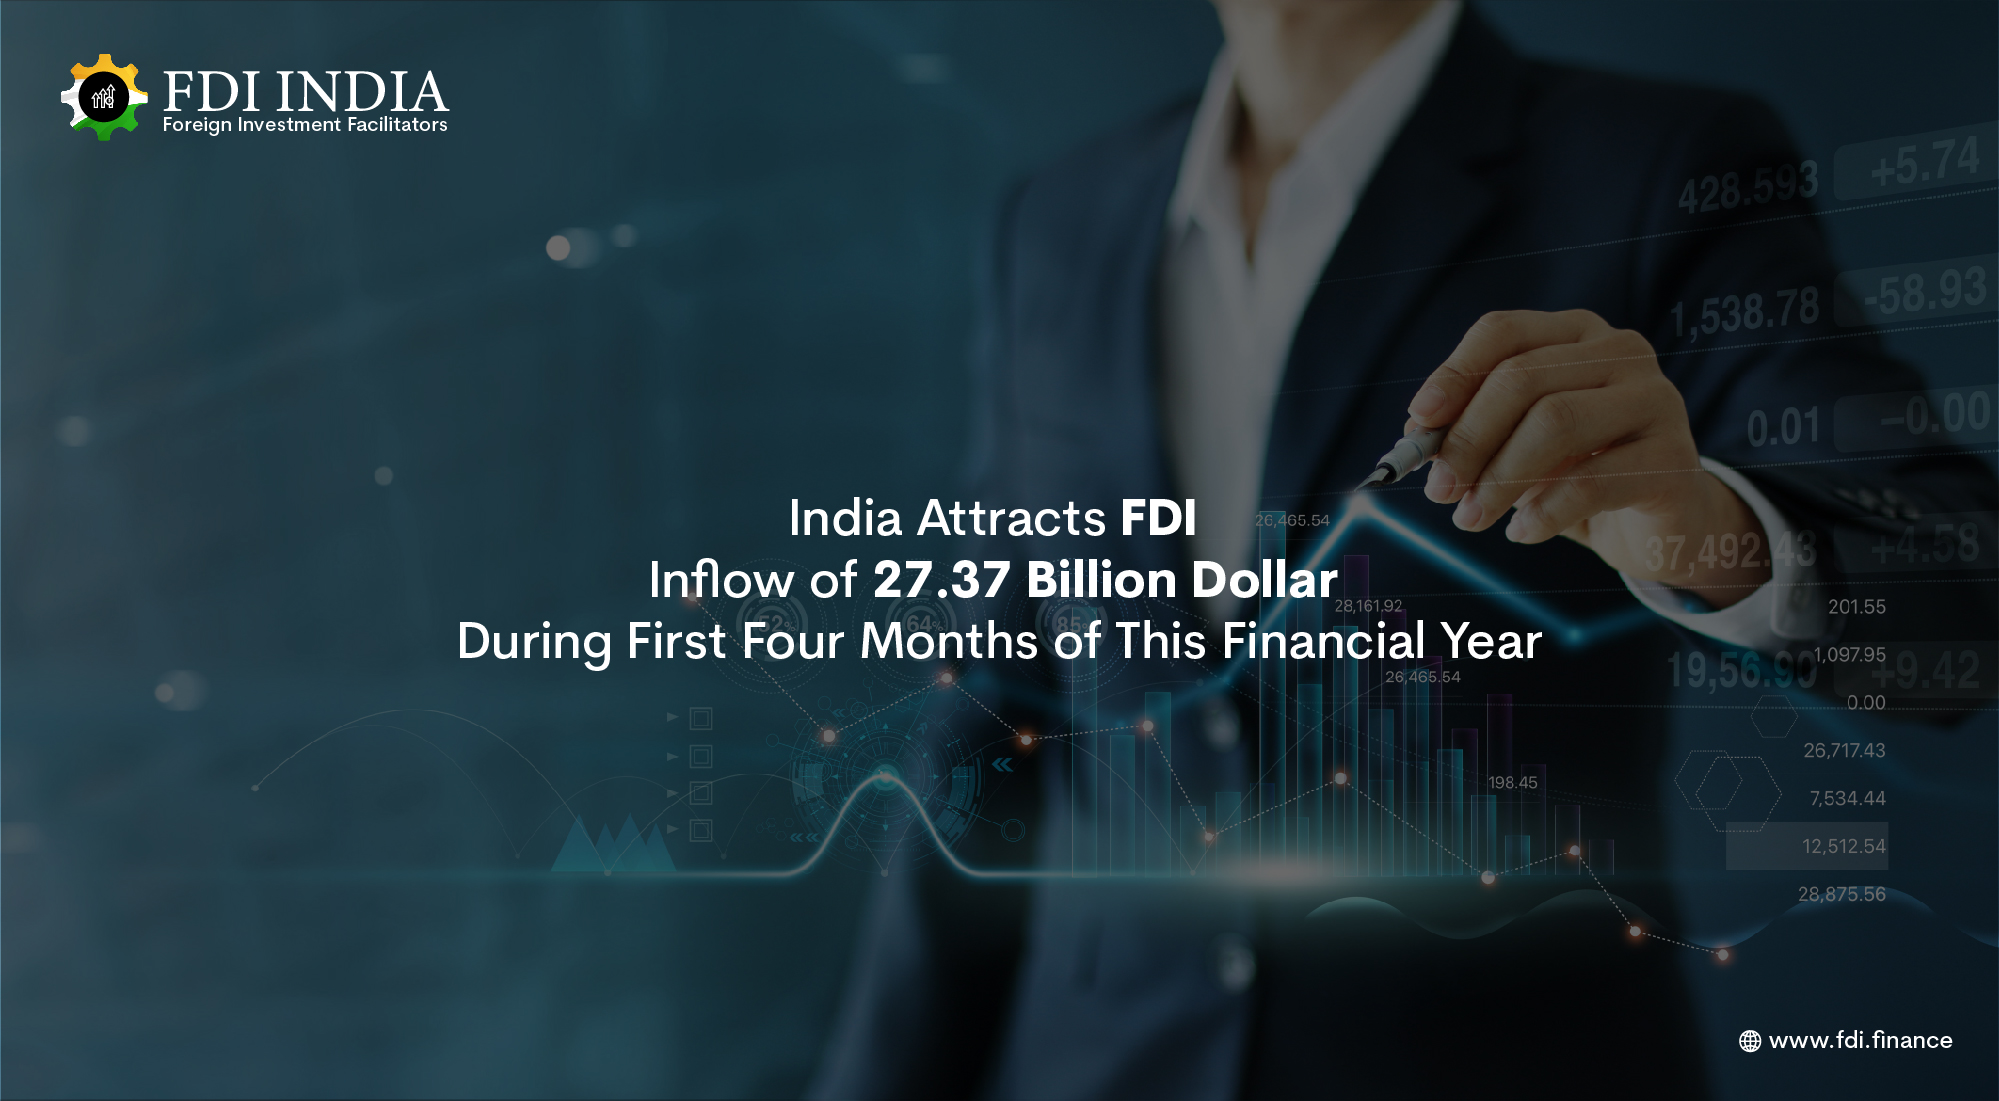 India Attracts FDI Inflow of 27.37 Billion Dollar During First Four Months of This Financial Year